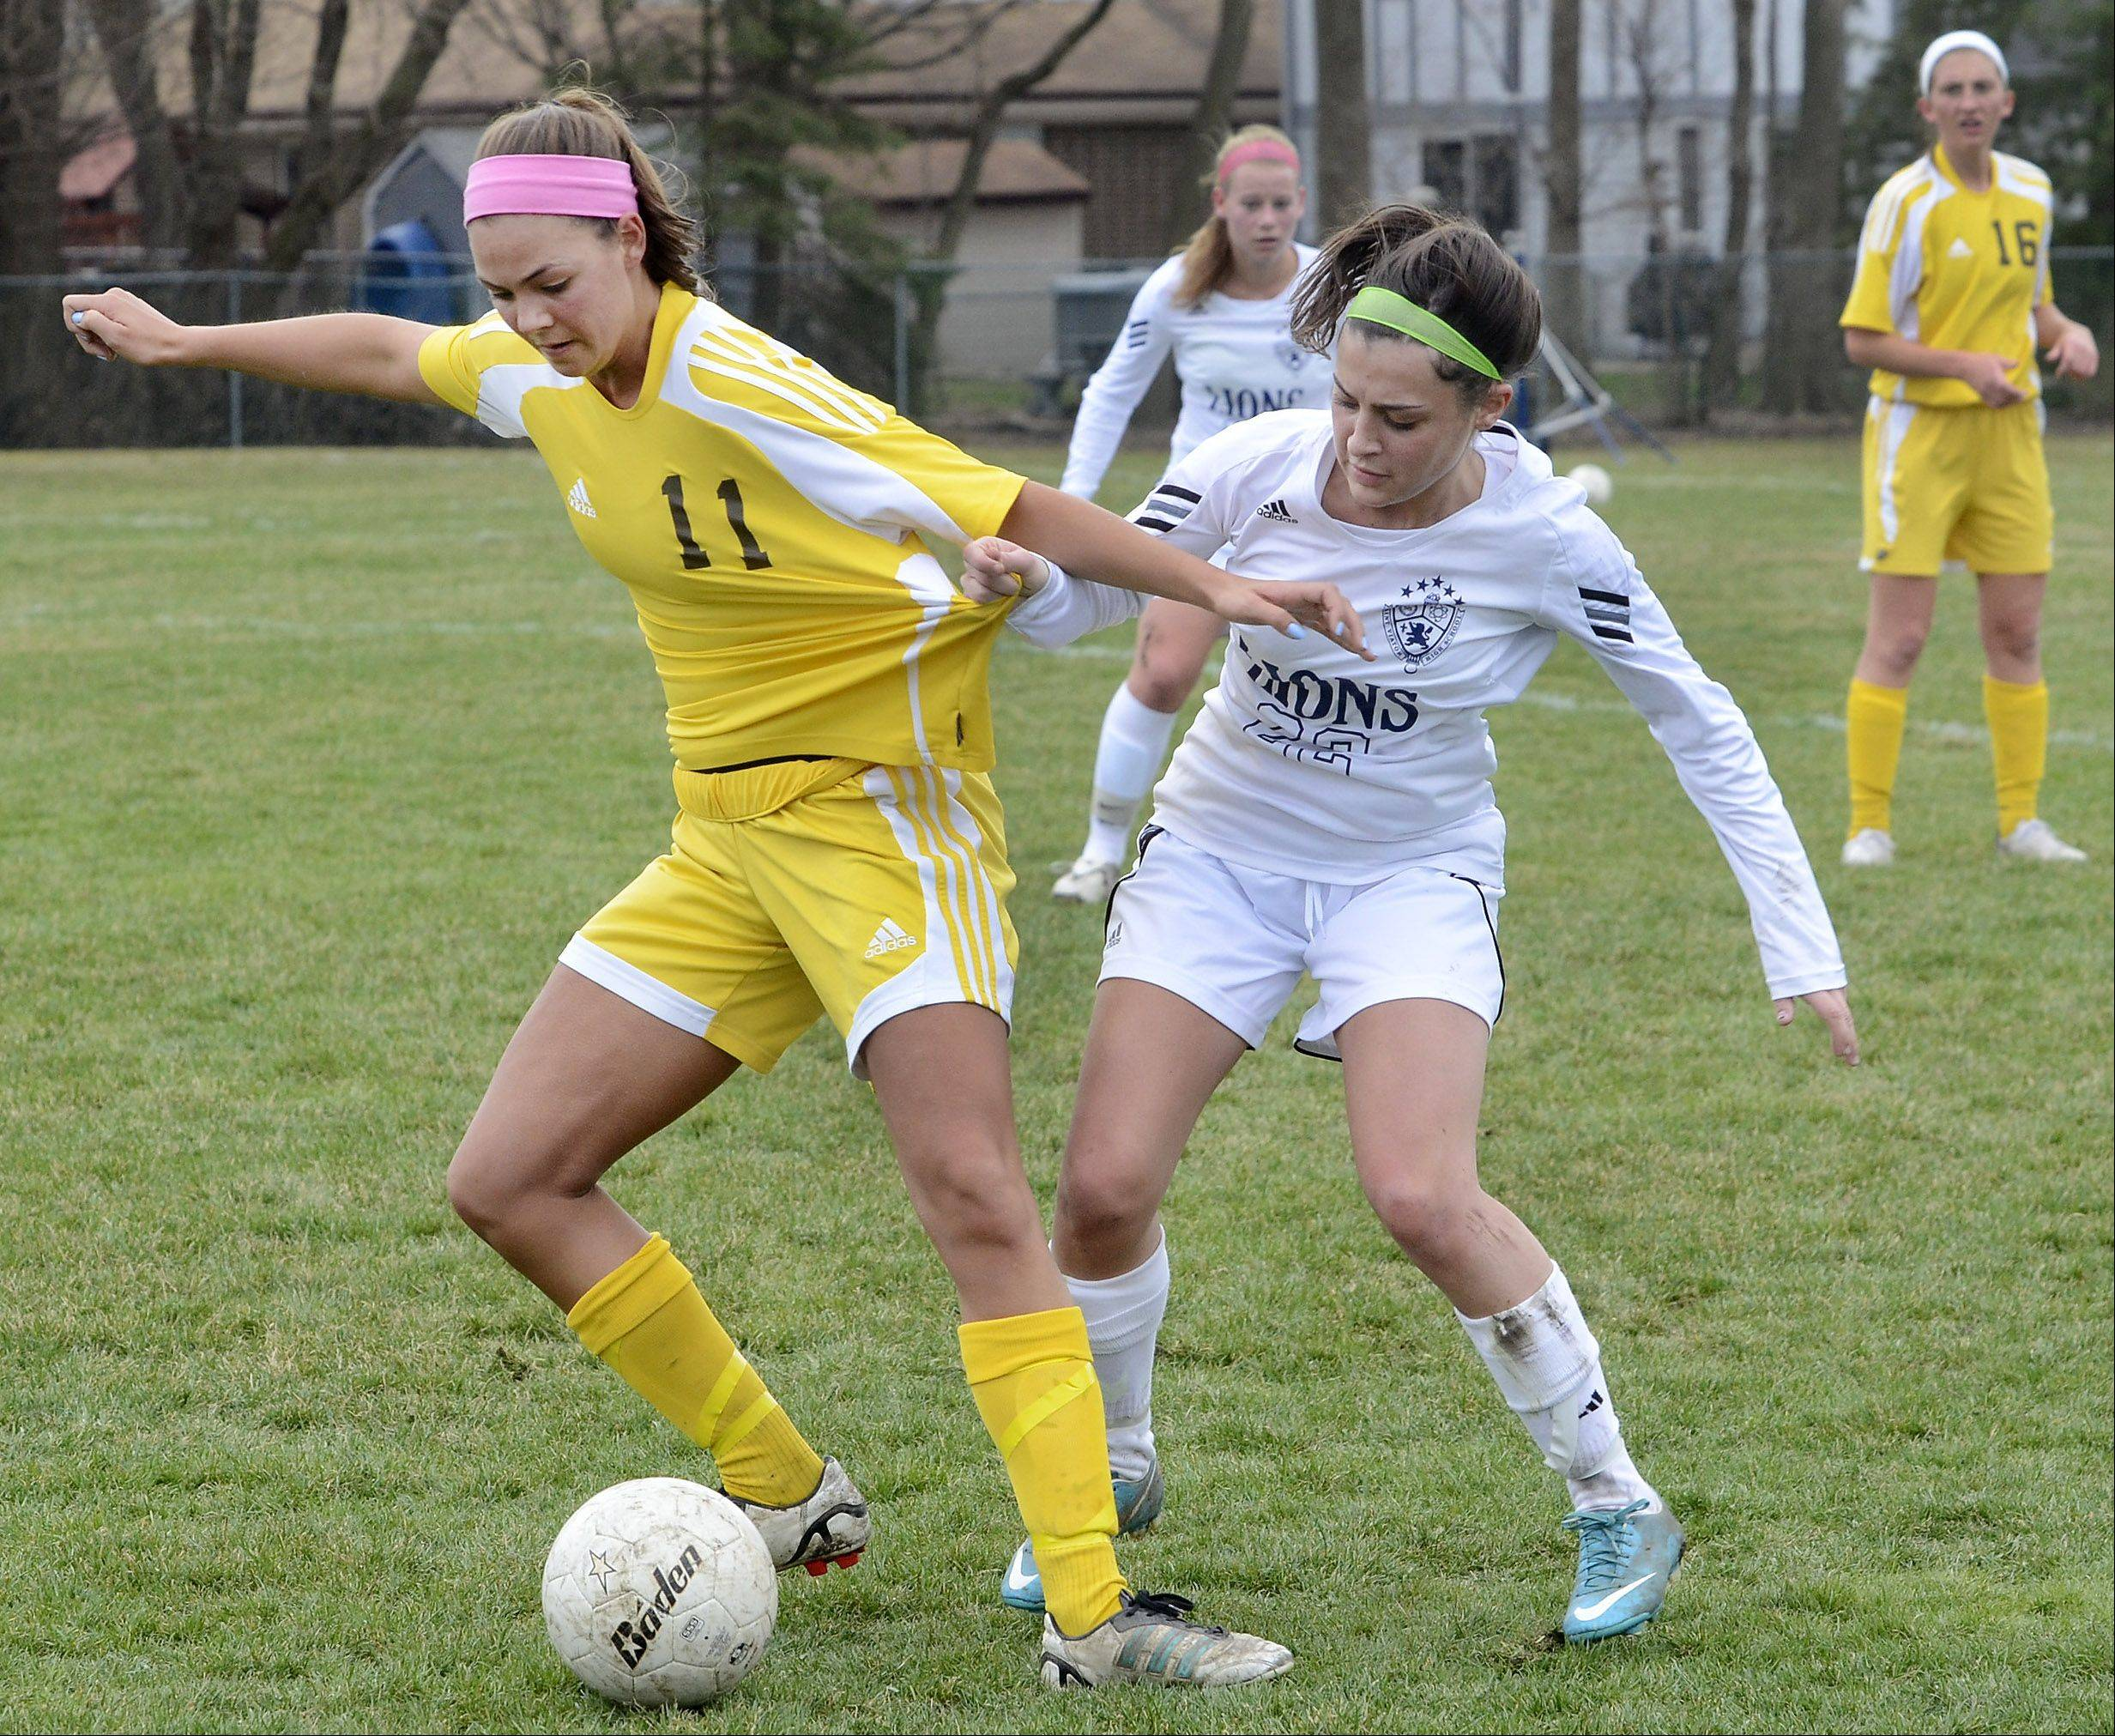 St. Viator's Maria Petrillo, right, grabs hold of the jersey of Carmel's Annie DiVenere on Saturday in Arlington Heights.